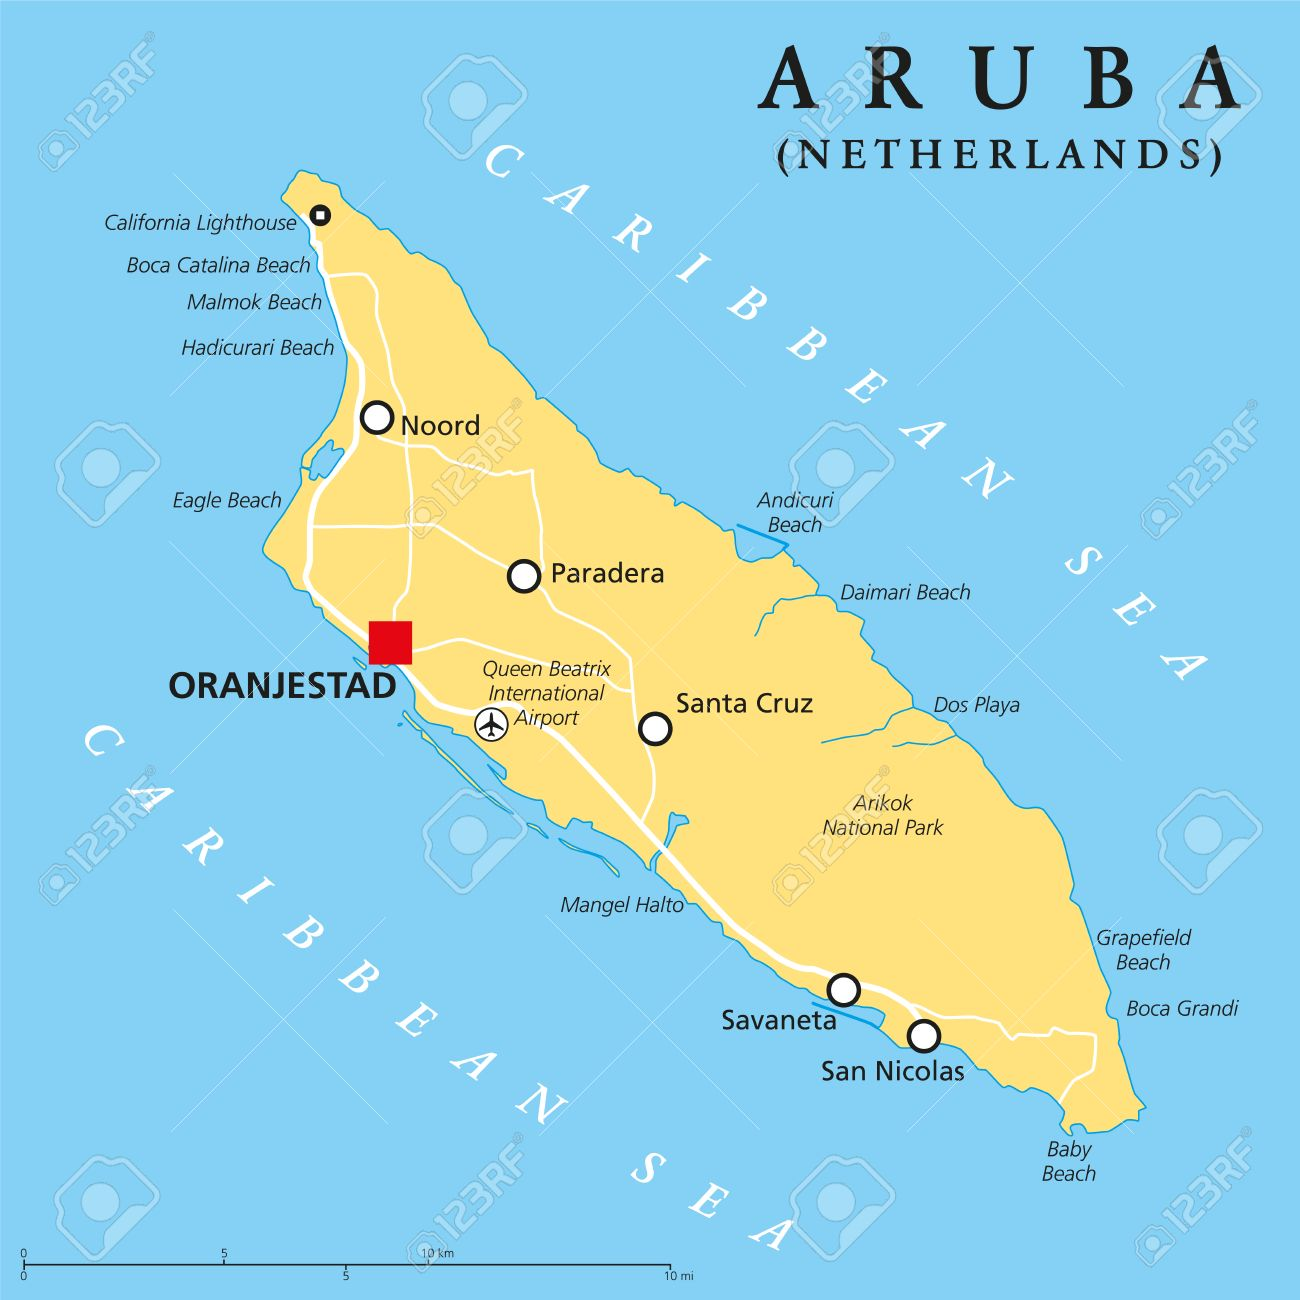 Aruba Political Map With Capital Oranjestad And Important Cities - Aruba map vector